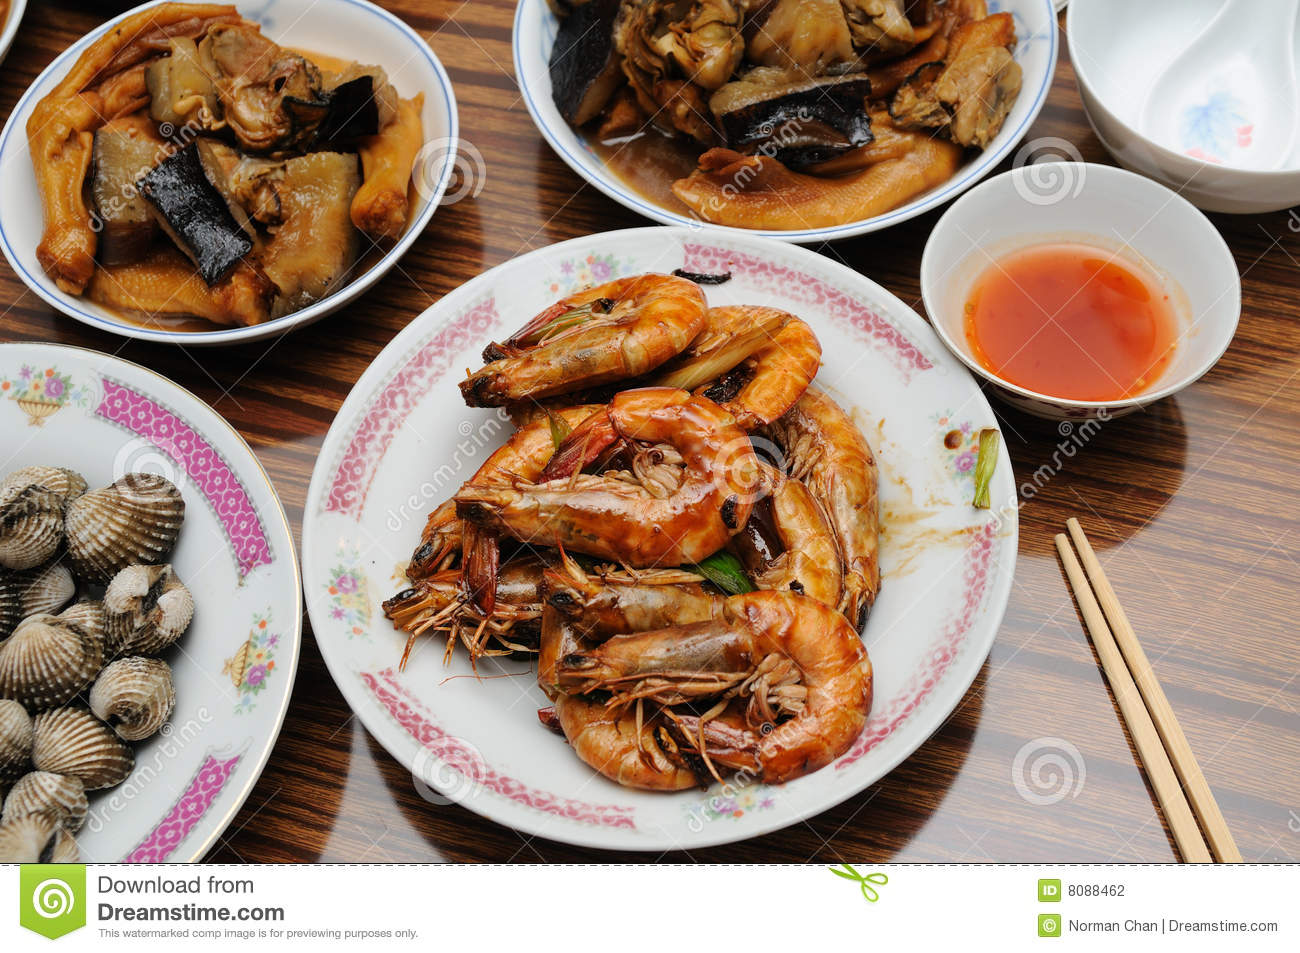 cuisine chinoise traditionnelle photographie stock - image: 8088462